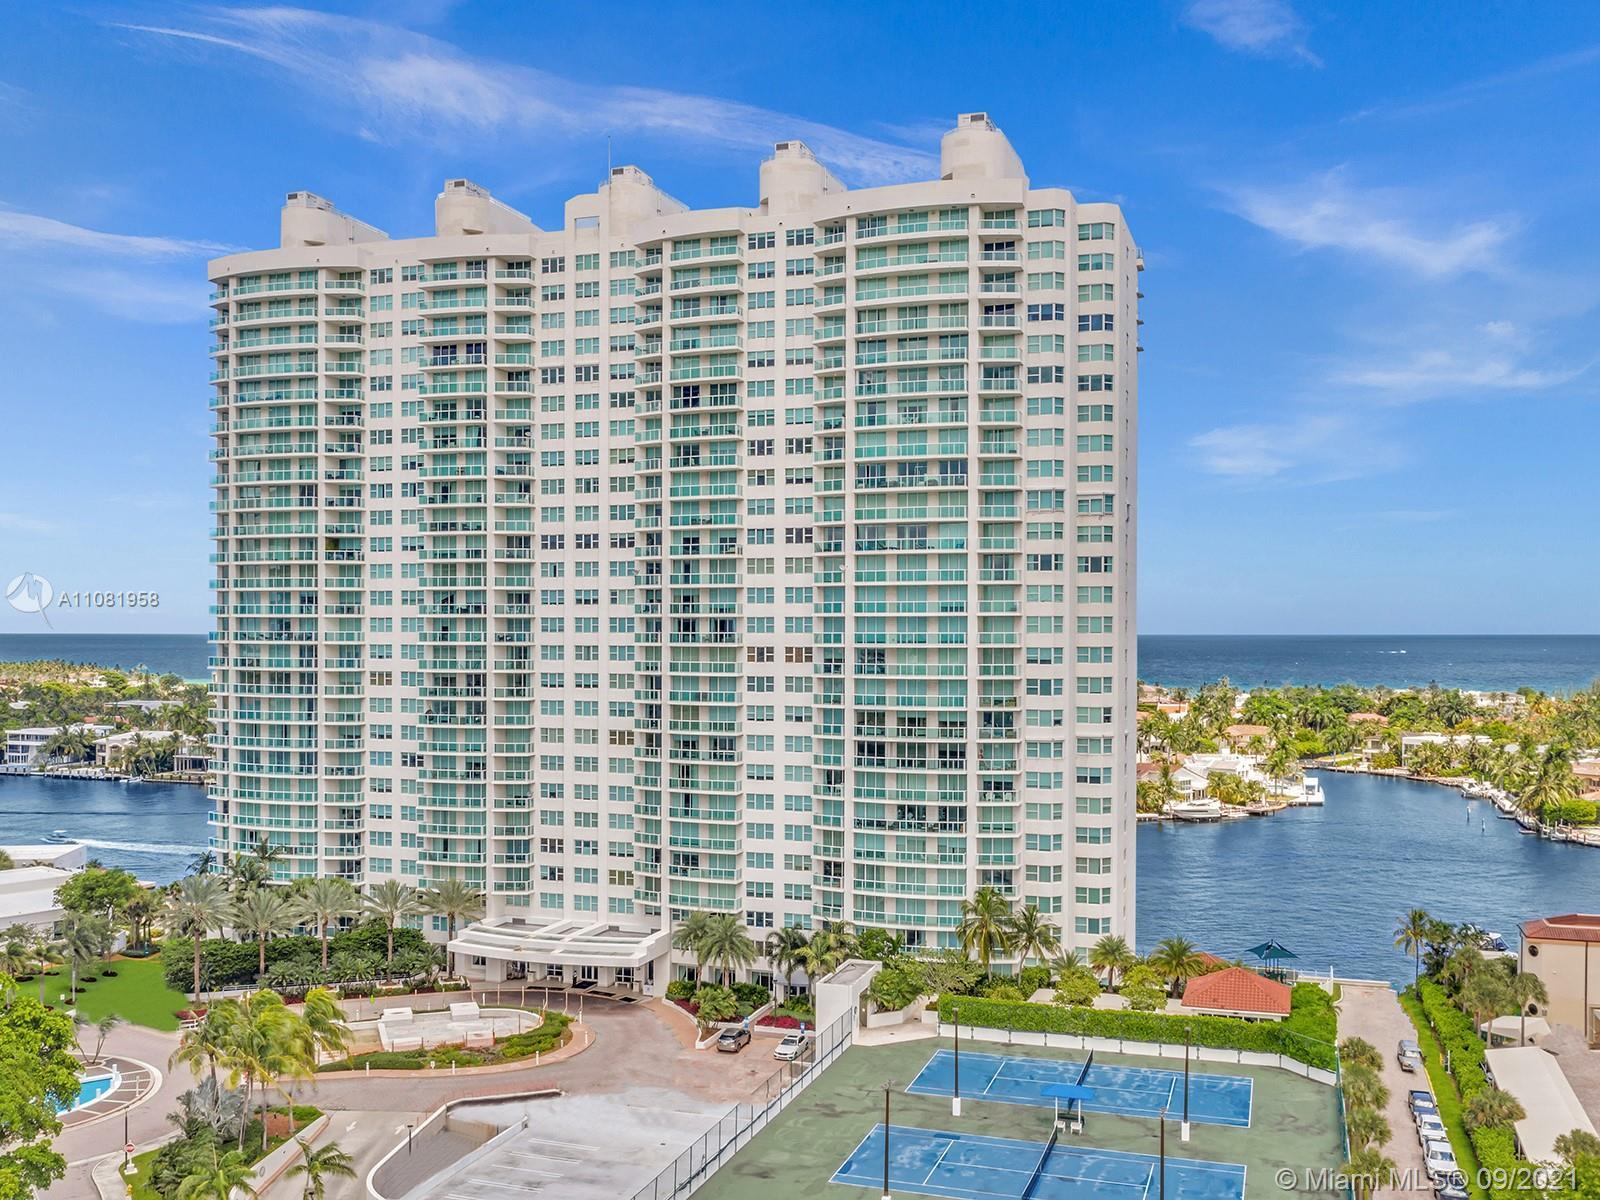 Take your private elevator up to this spacious condo where you will be greeted by breathtaking views